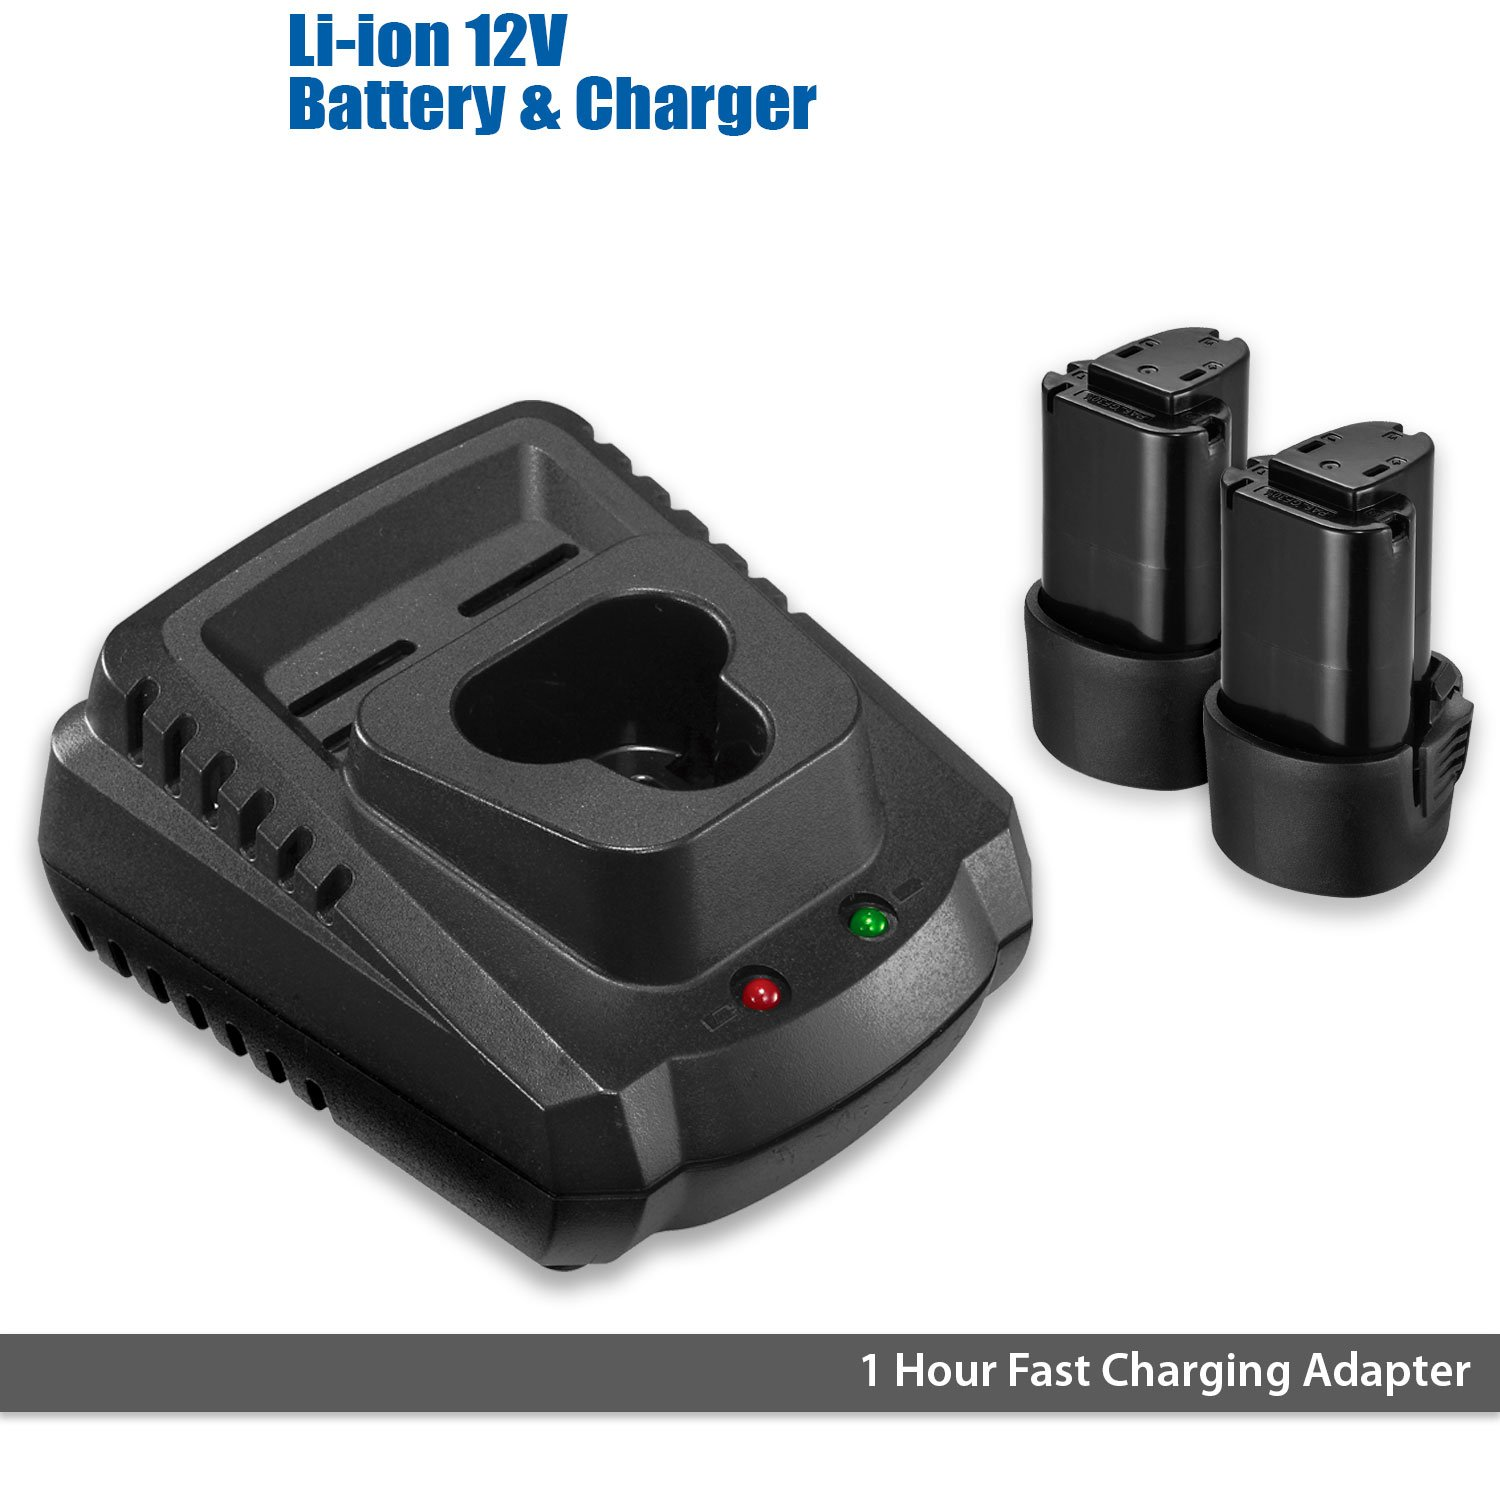 ACDelco G12 Series 12V Cordless 3'' Mini Polisher Tool Set with 2 Li-ion Batteries, Charger, and Accessory Kit, ARS1212 by ACDelco Tools (Image #4)